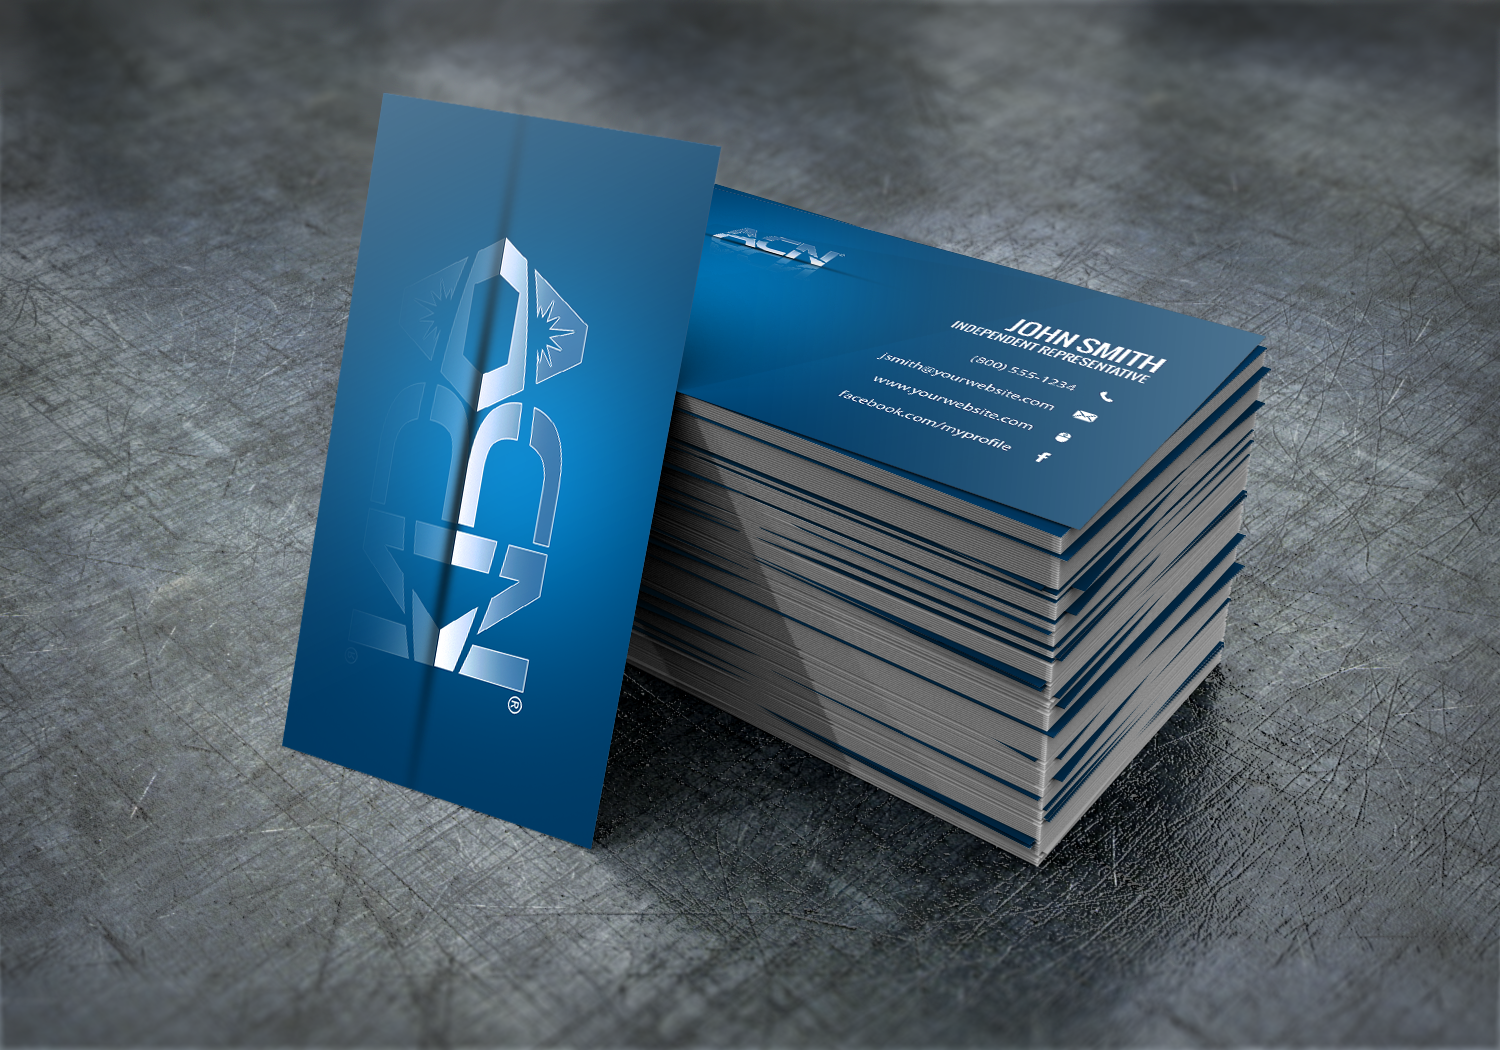 Acn Business Cards Personalized Acn Business Cards Custom Acn Cards Acn Printable File Custom Business Card Acn01 Custom Business Cards Business Card Size Personal Cards